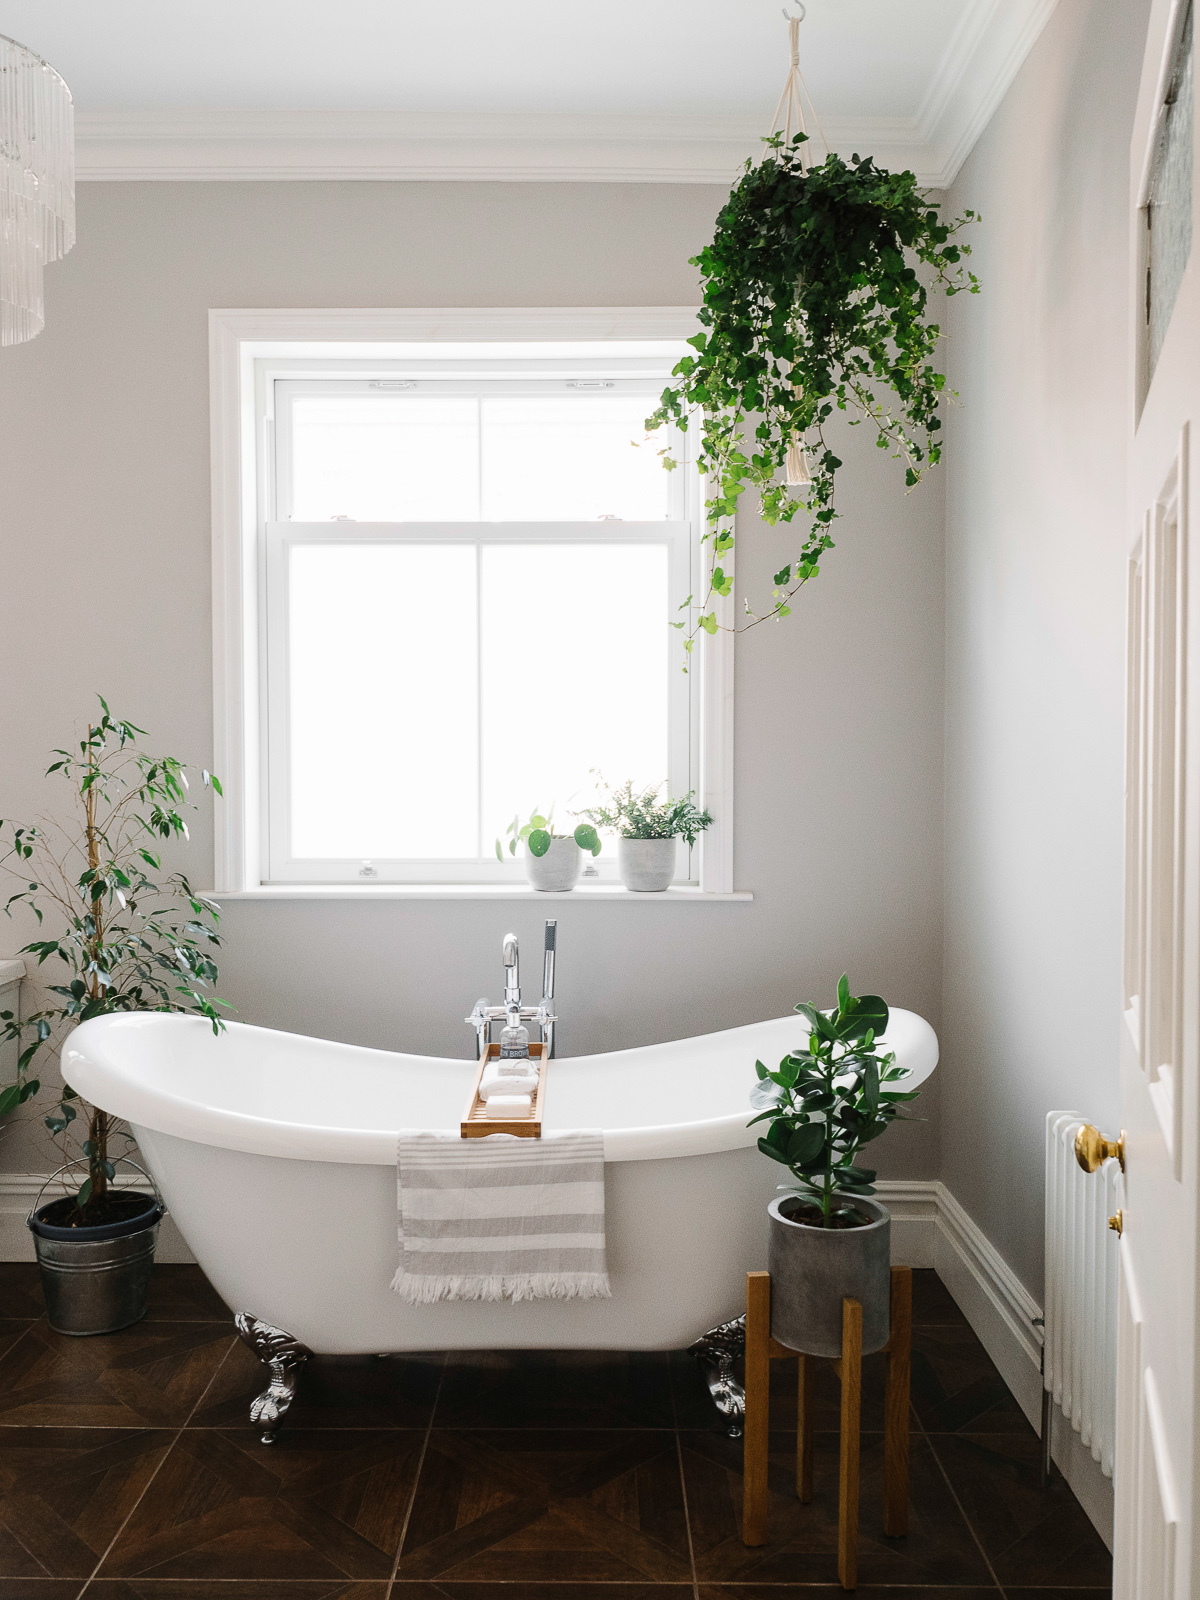 My bathroom tour and 5 ways to create the hotel bathroom look at home